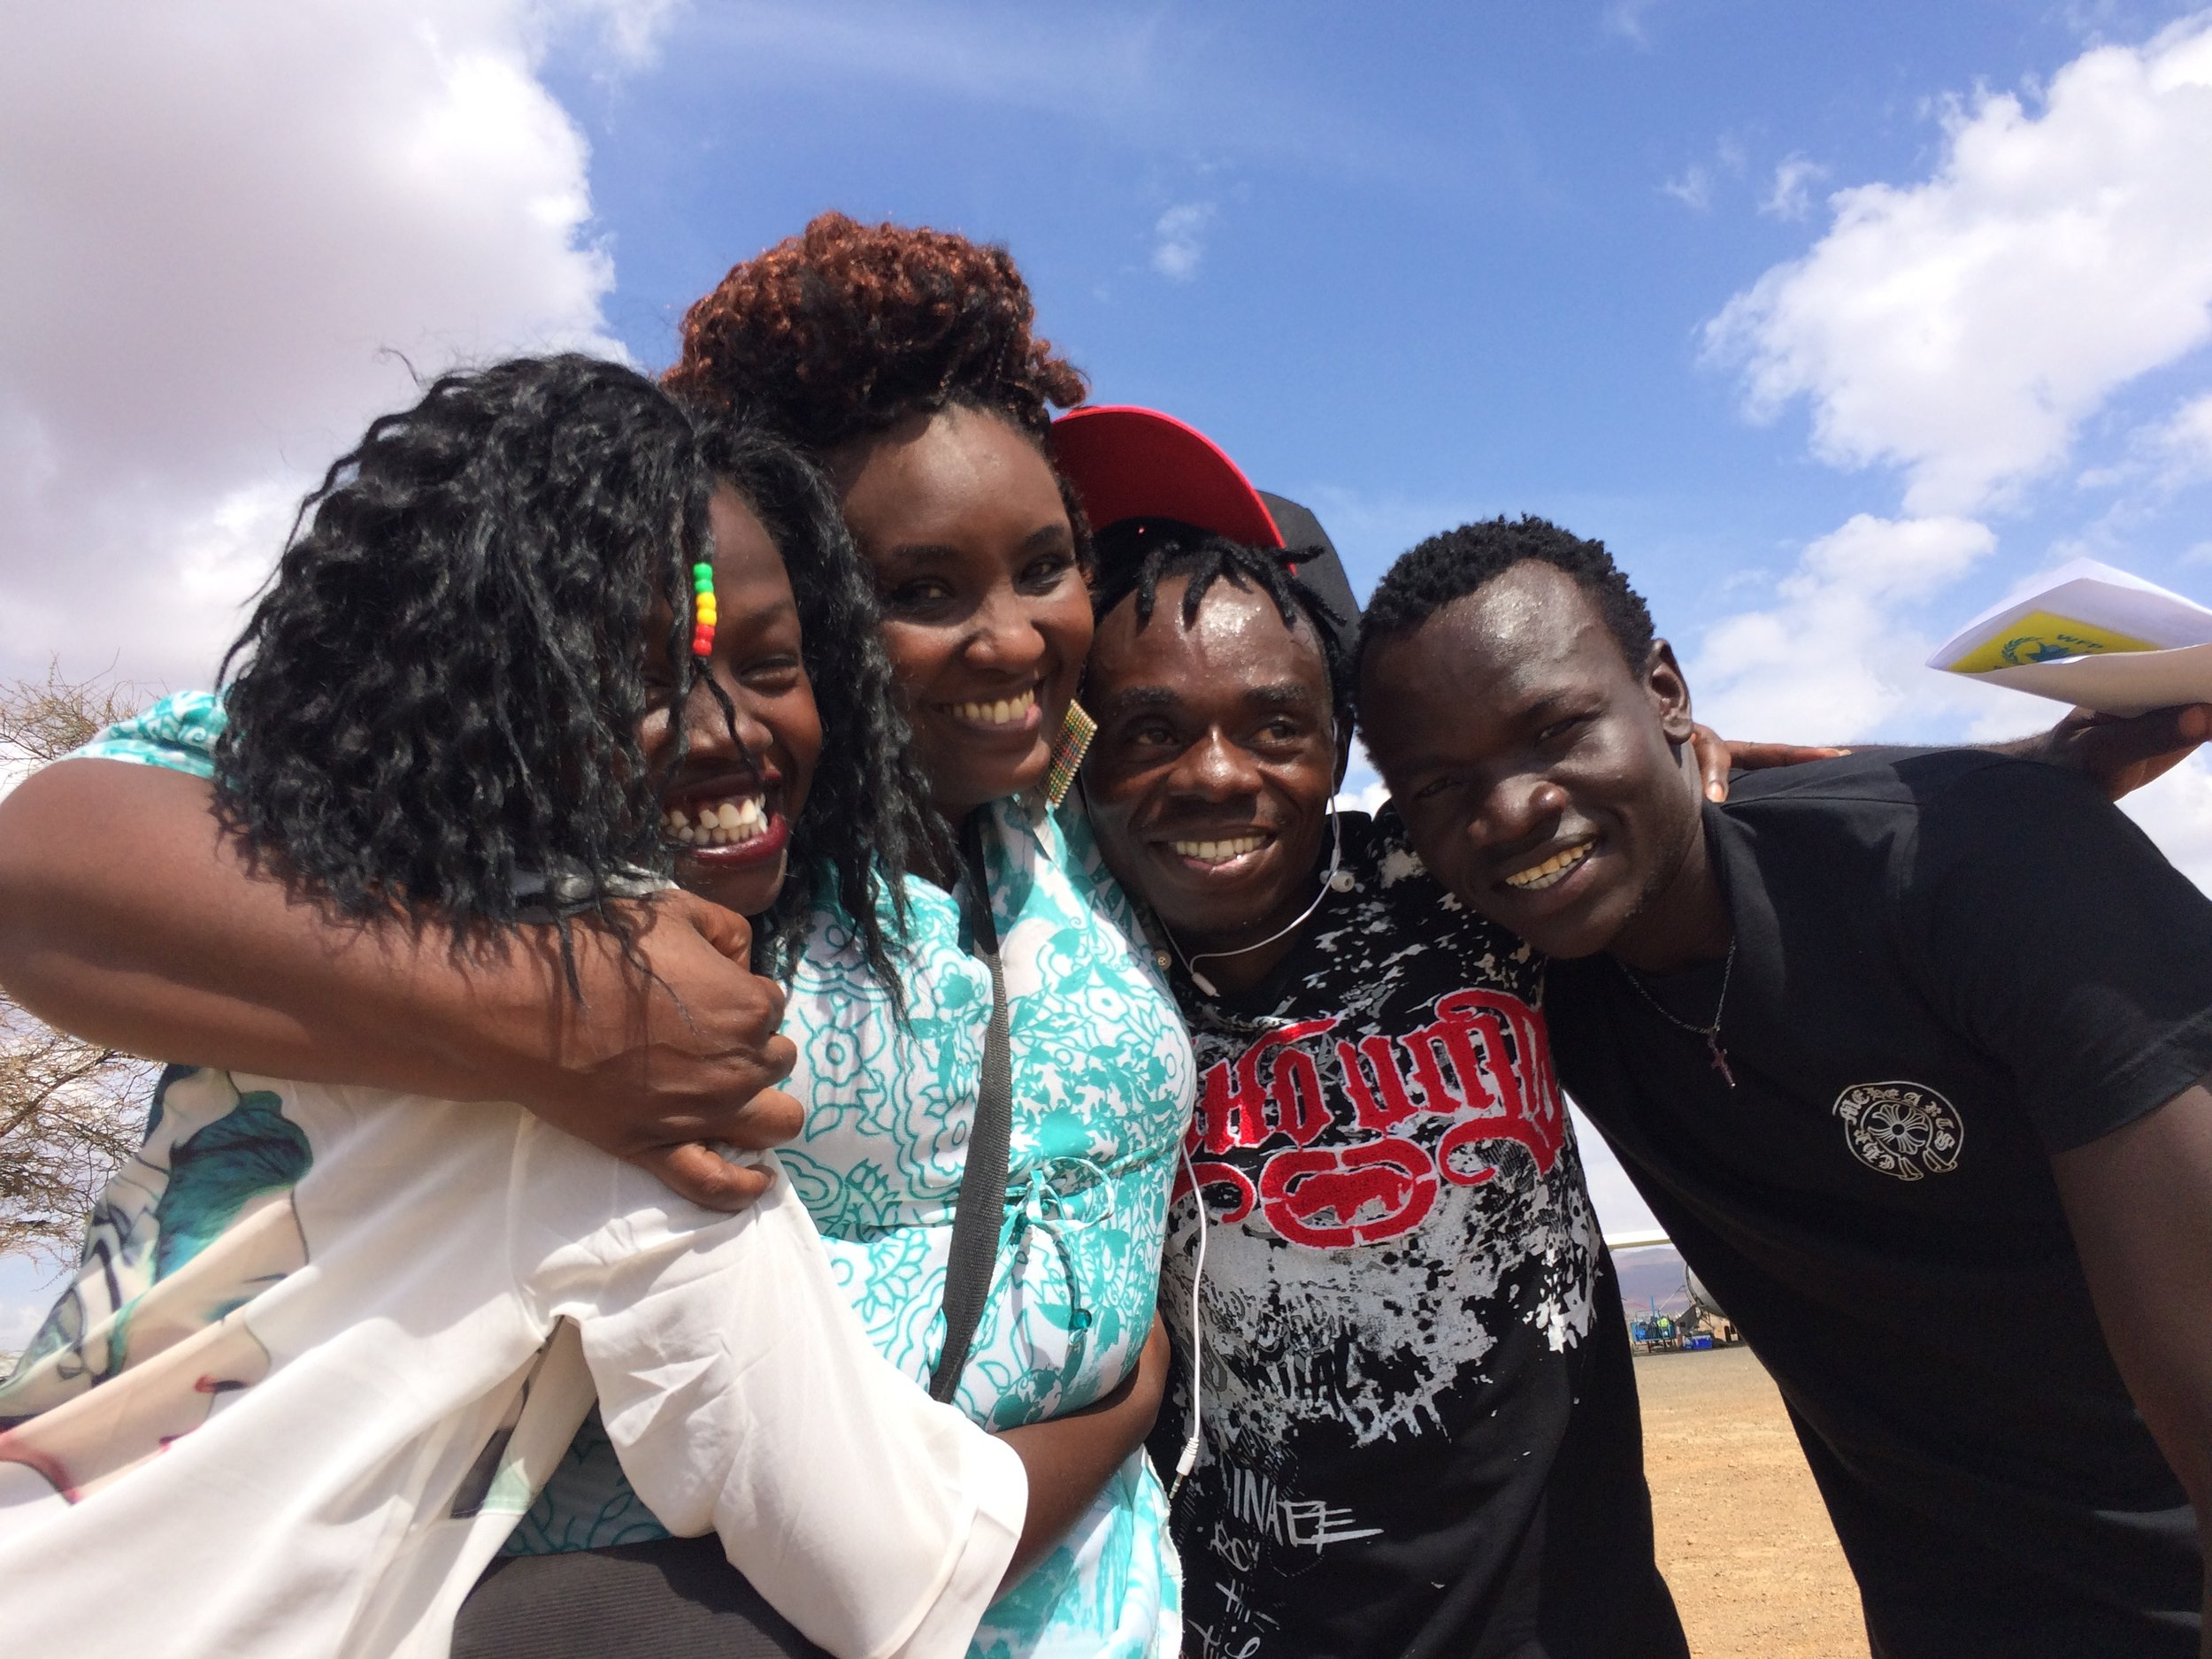 (From right to left) Maya, Journalism Award Winner; Perpetua, FilmAid Field Manager, Kakuma; Justin, Filmmaking Award Winner; Isse, Journalism Award Winner.